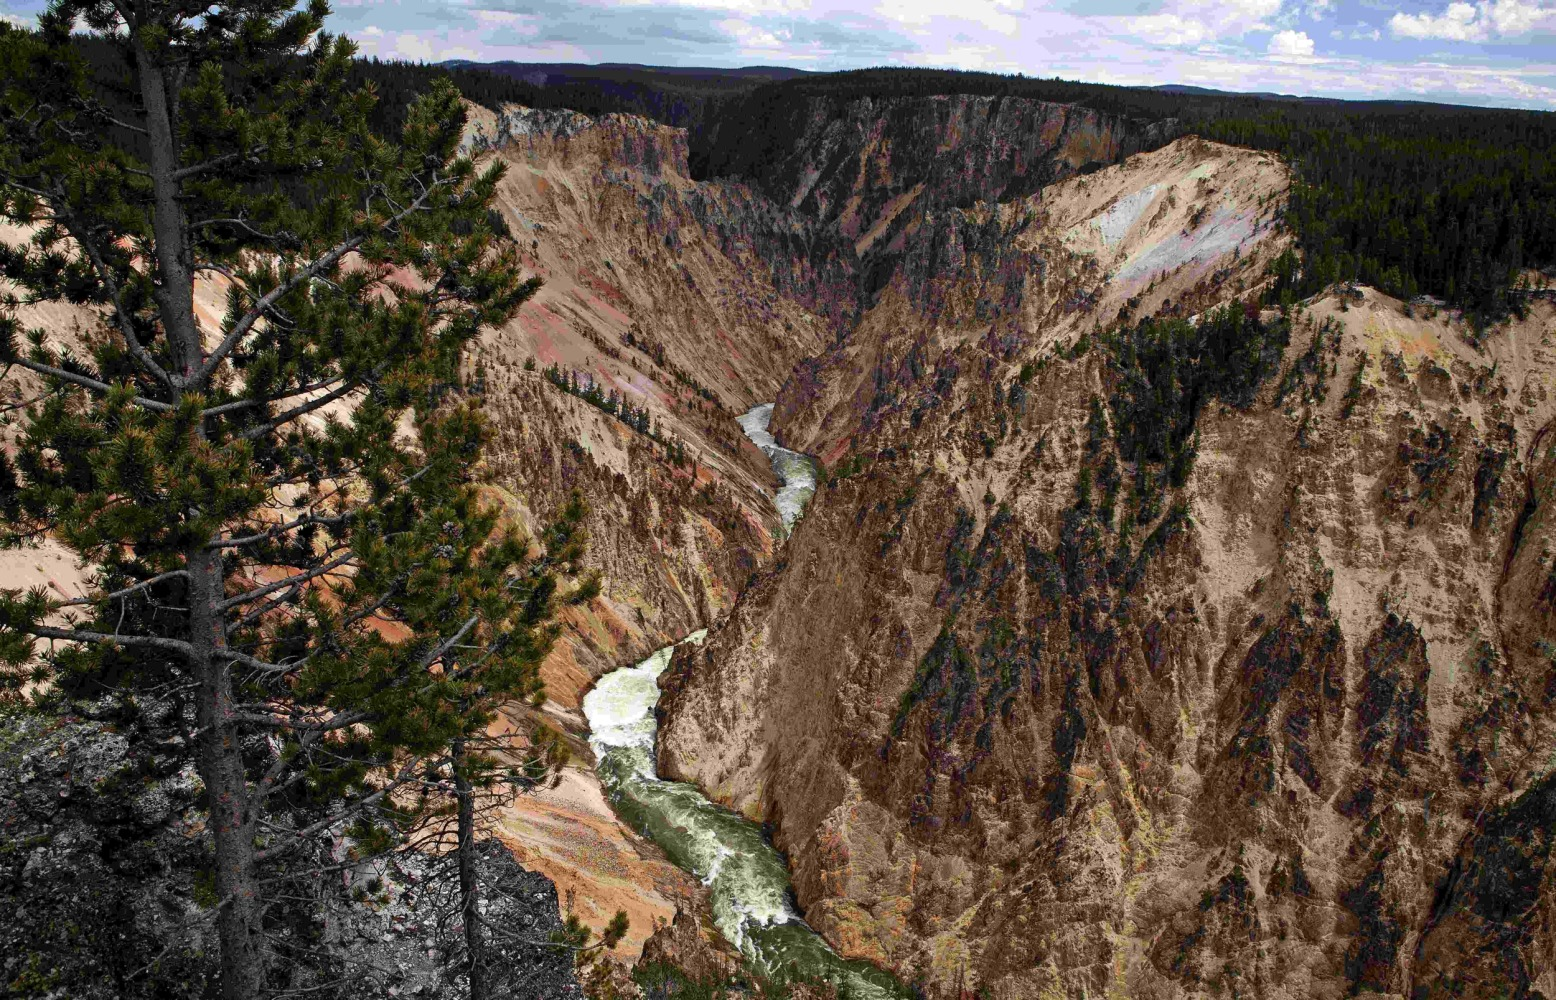 grand canyon from helicopter with Yellowstone National Park Worker Falls Her Death Wyoming Cliff N638741 on Amazing Sunrises Sunsets Grand Canyon besides The Best Las Vegas Wedding Chapels likewise Havasu Falls Arizona also Natural Wonders Of The World also Niagara Falls City Cdn On Onnf.